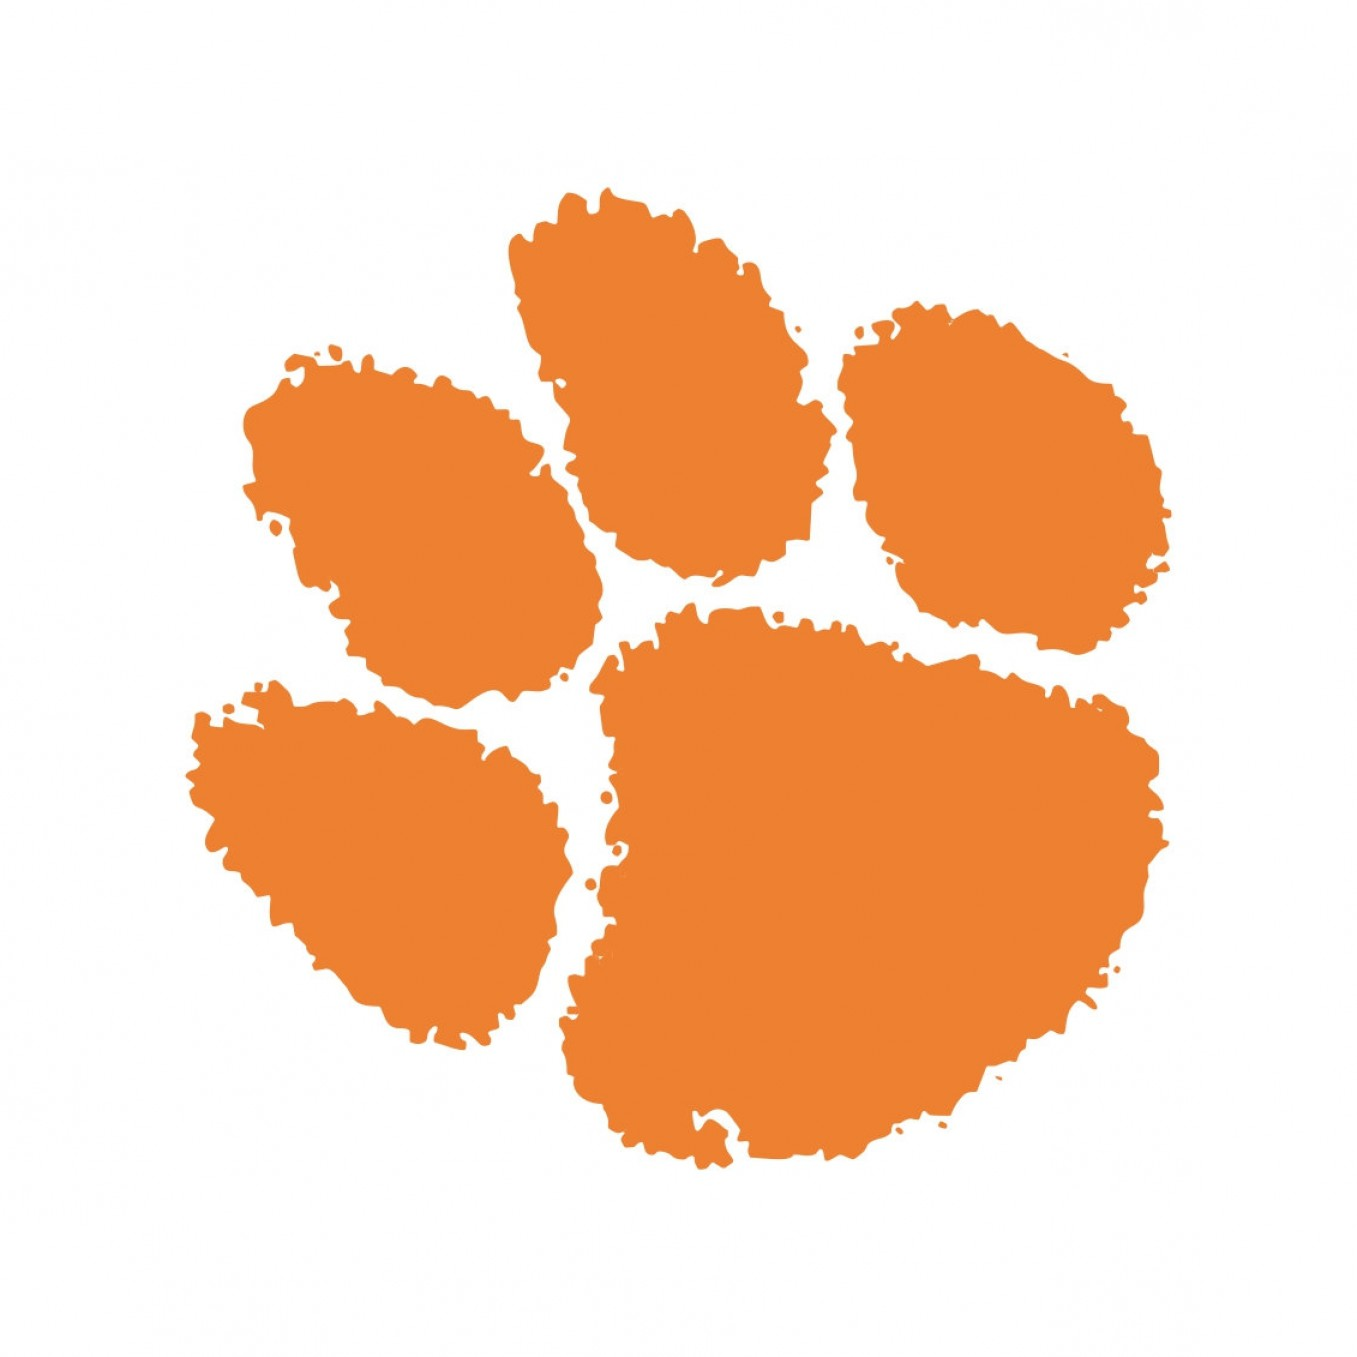 7 free free The  best vector from Clemson images. Download